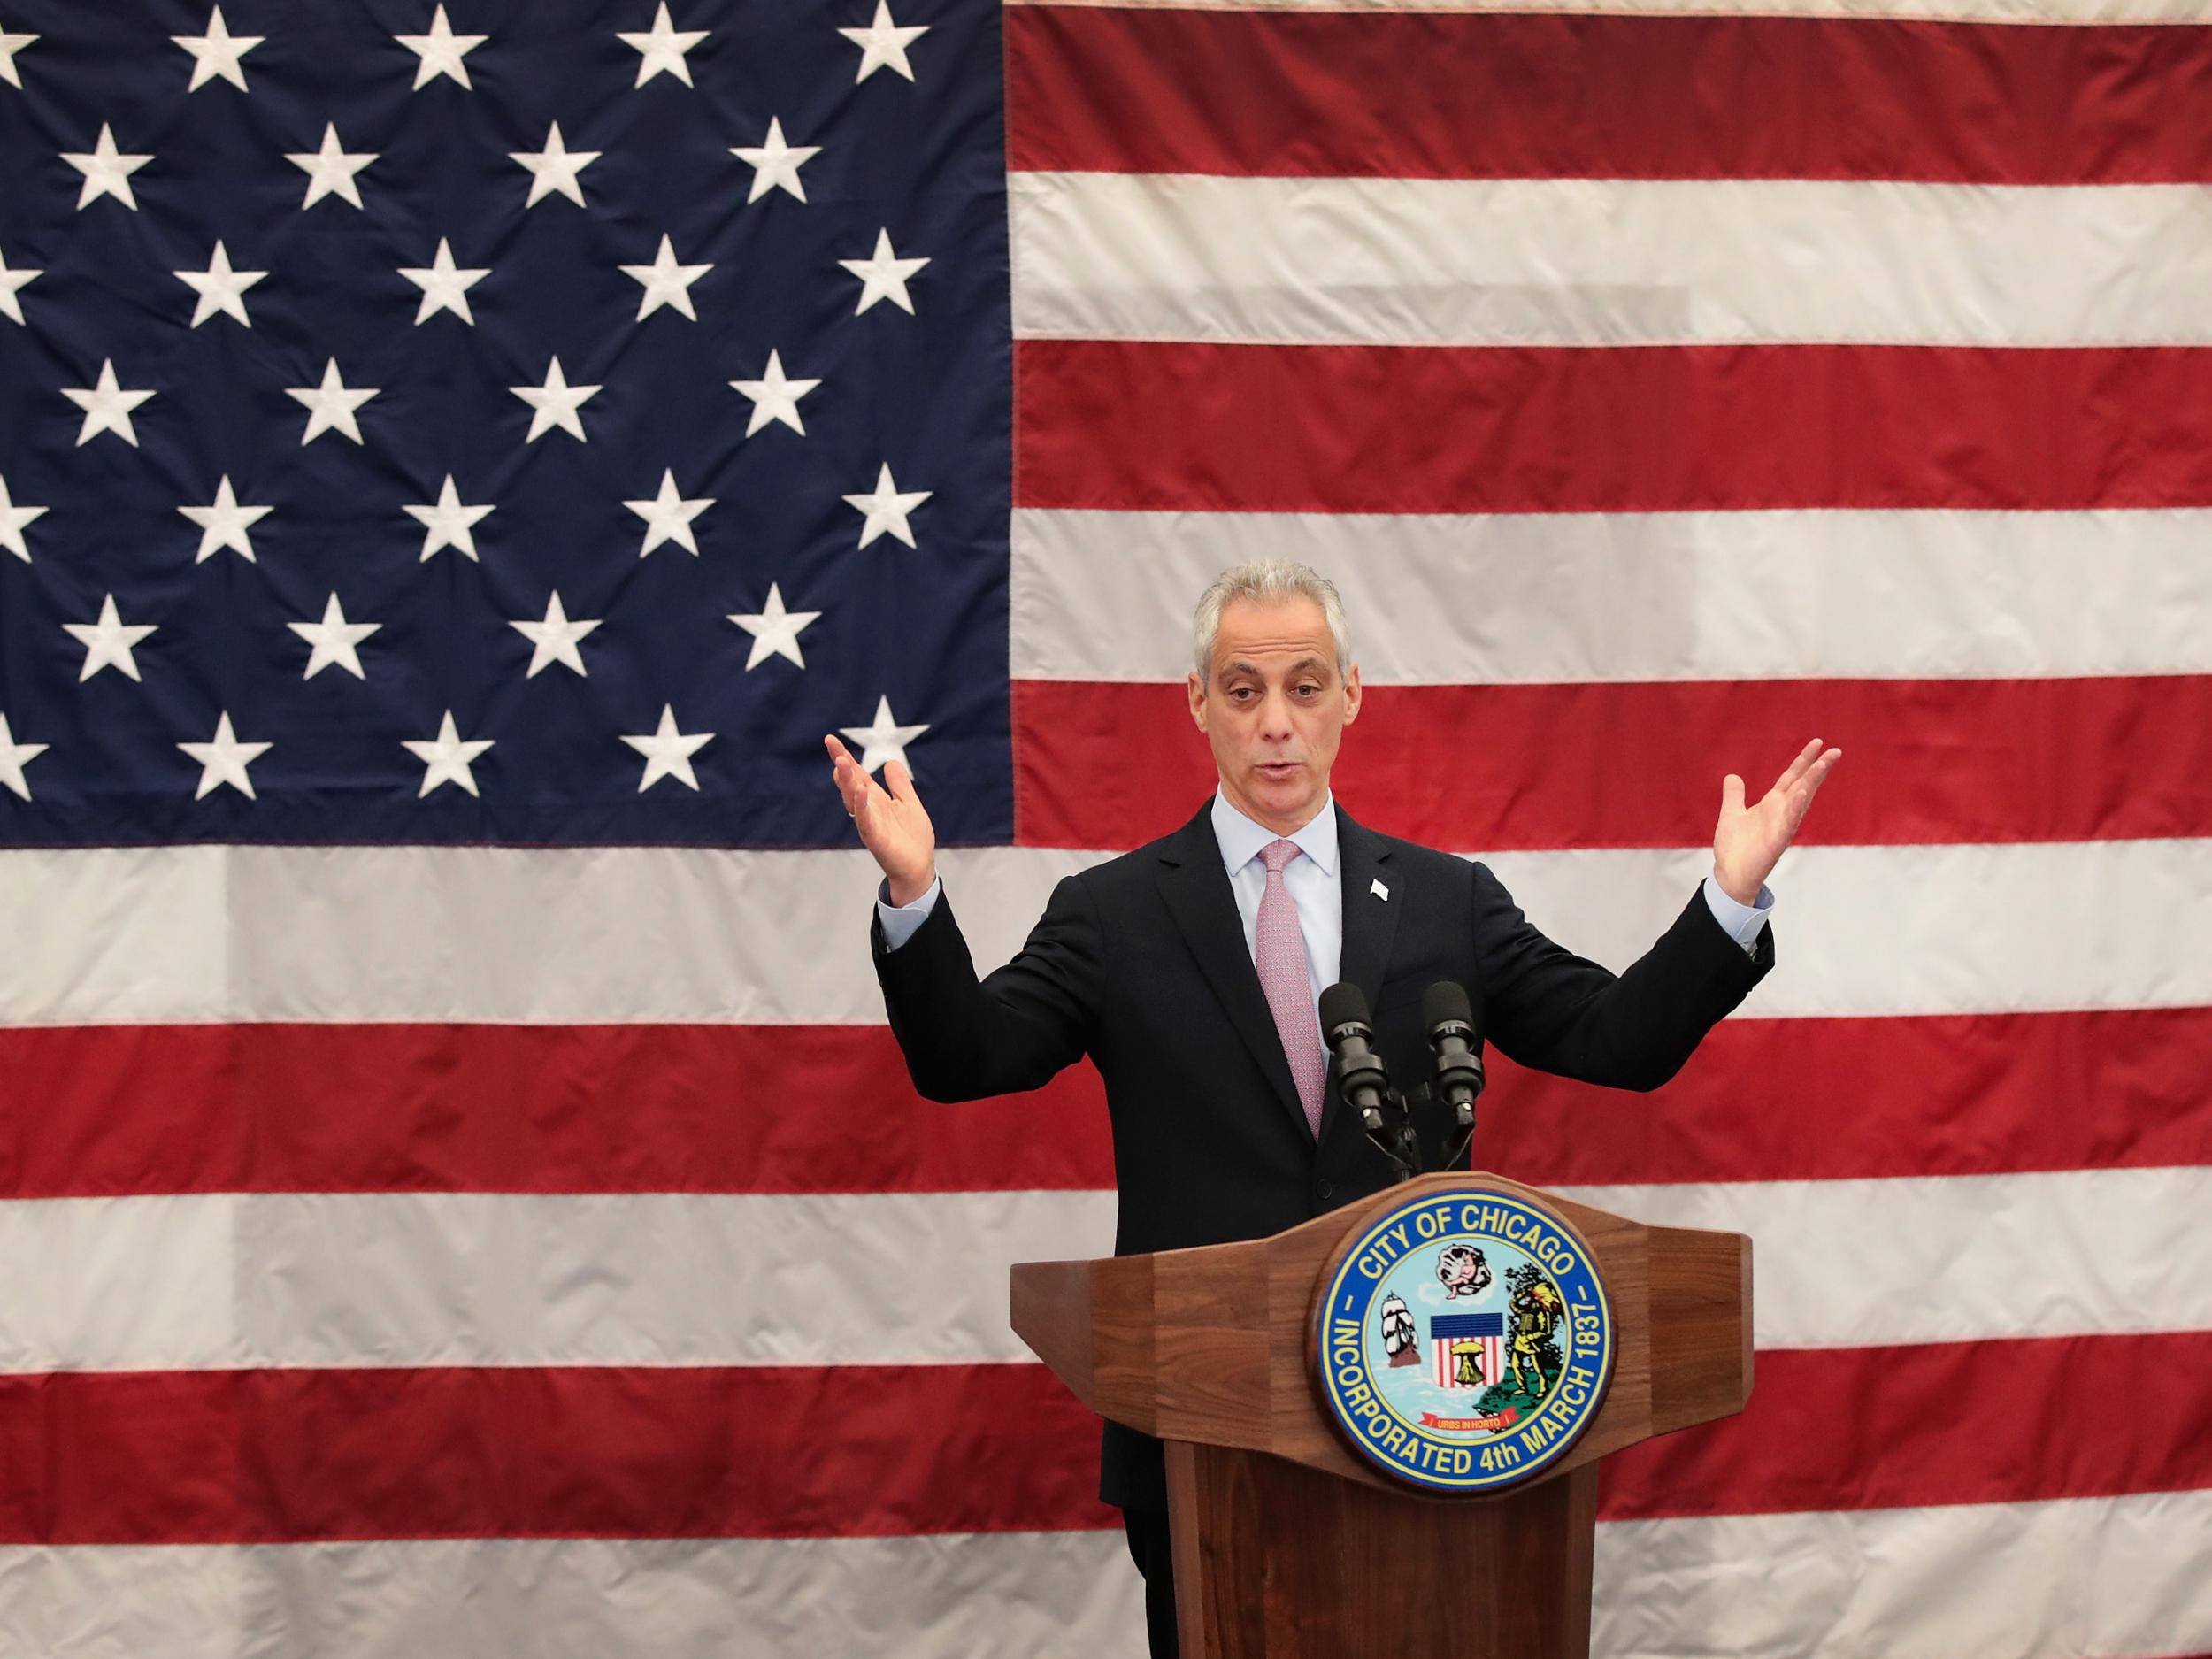 Chicago Mayor Rahm Emanuel will not seek re-election as city's gun violence crisis deepens